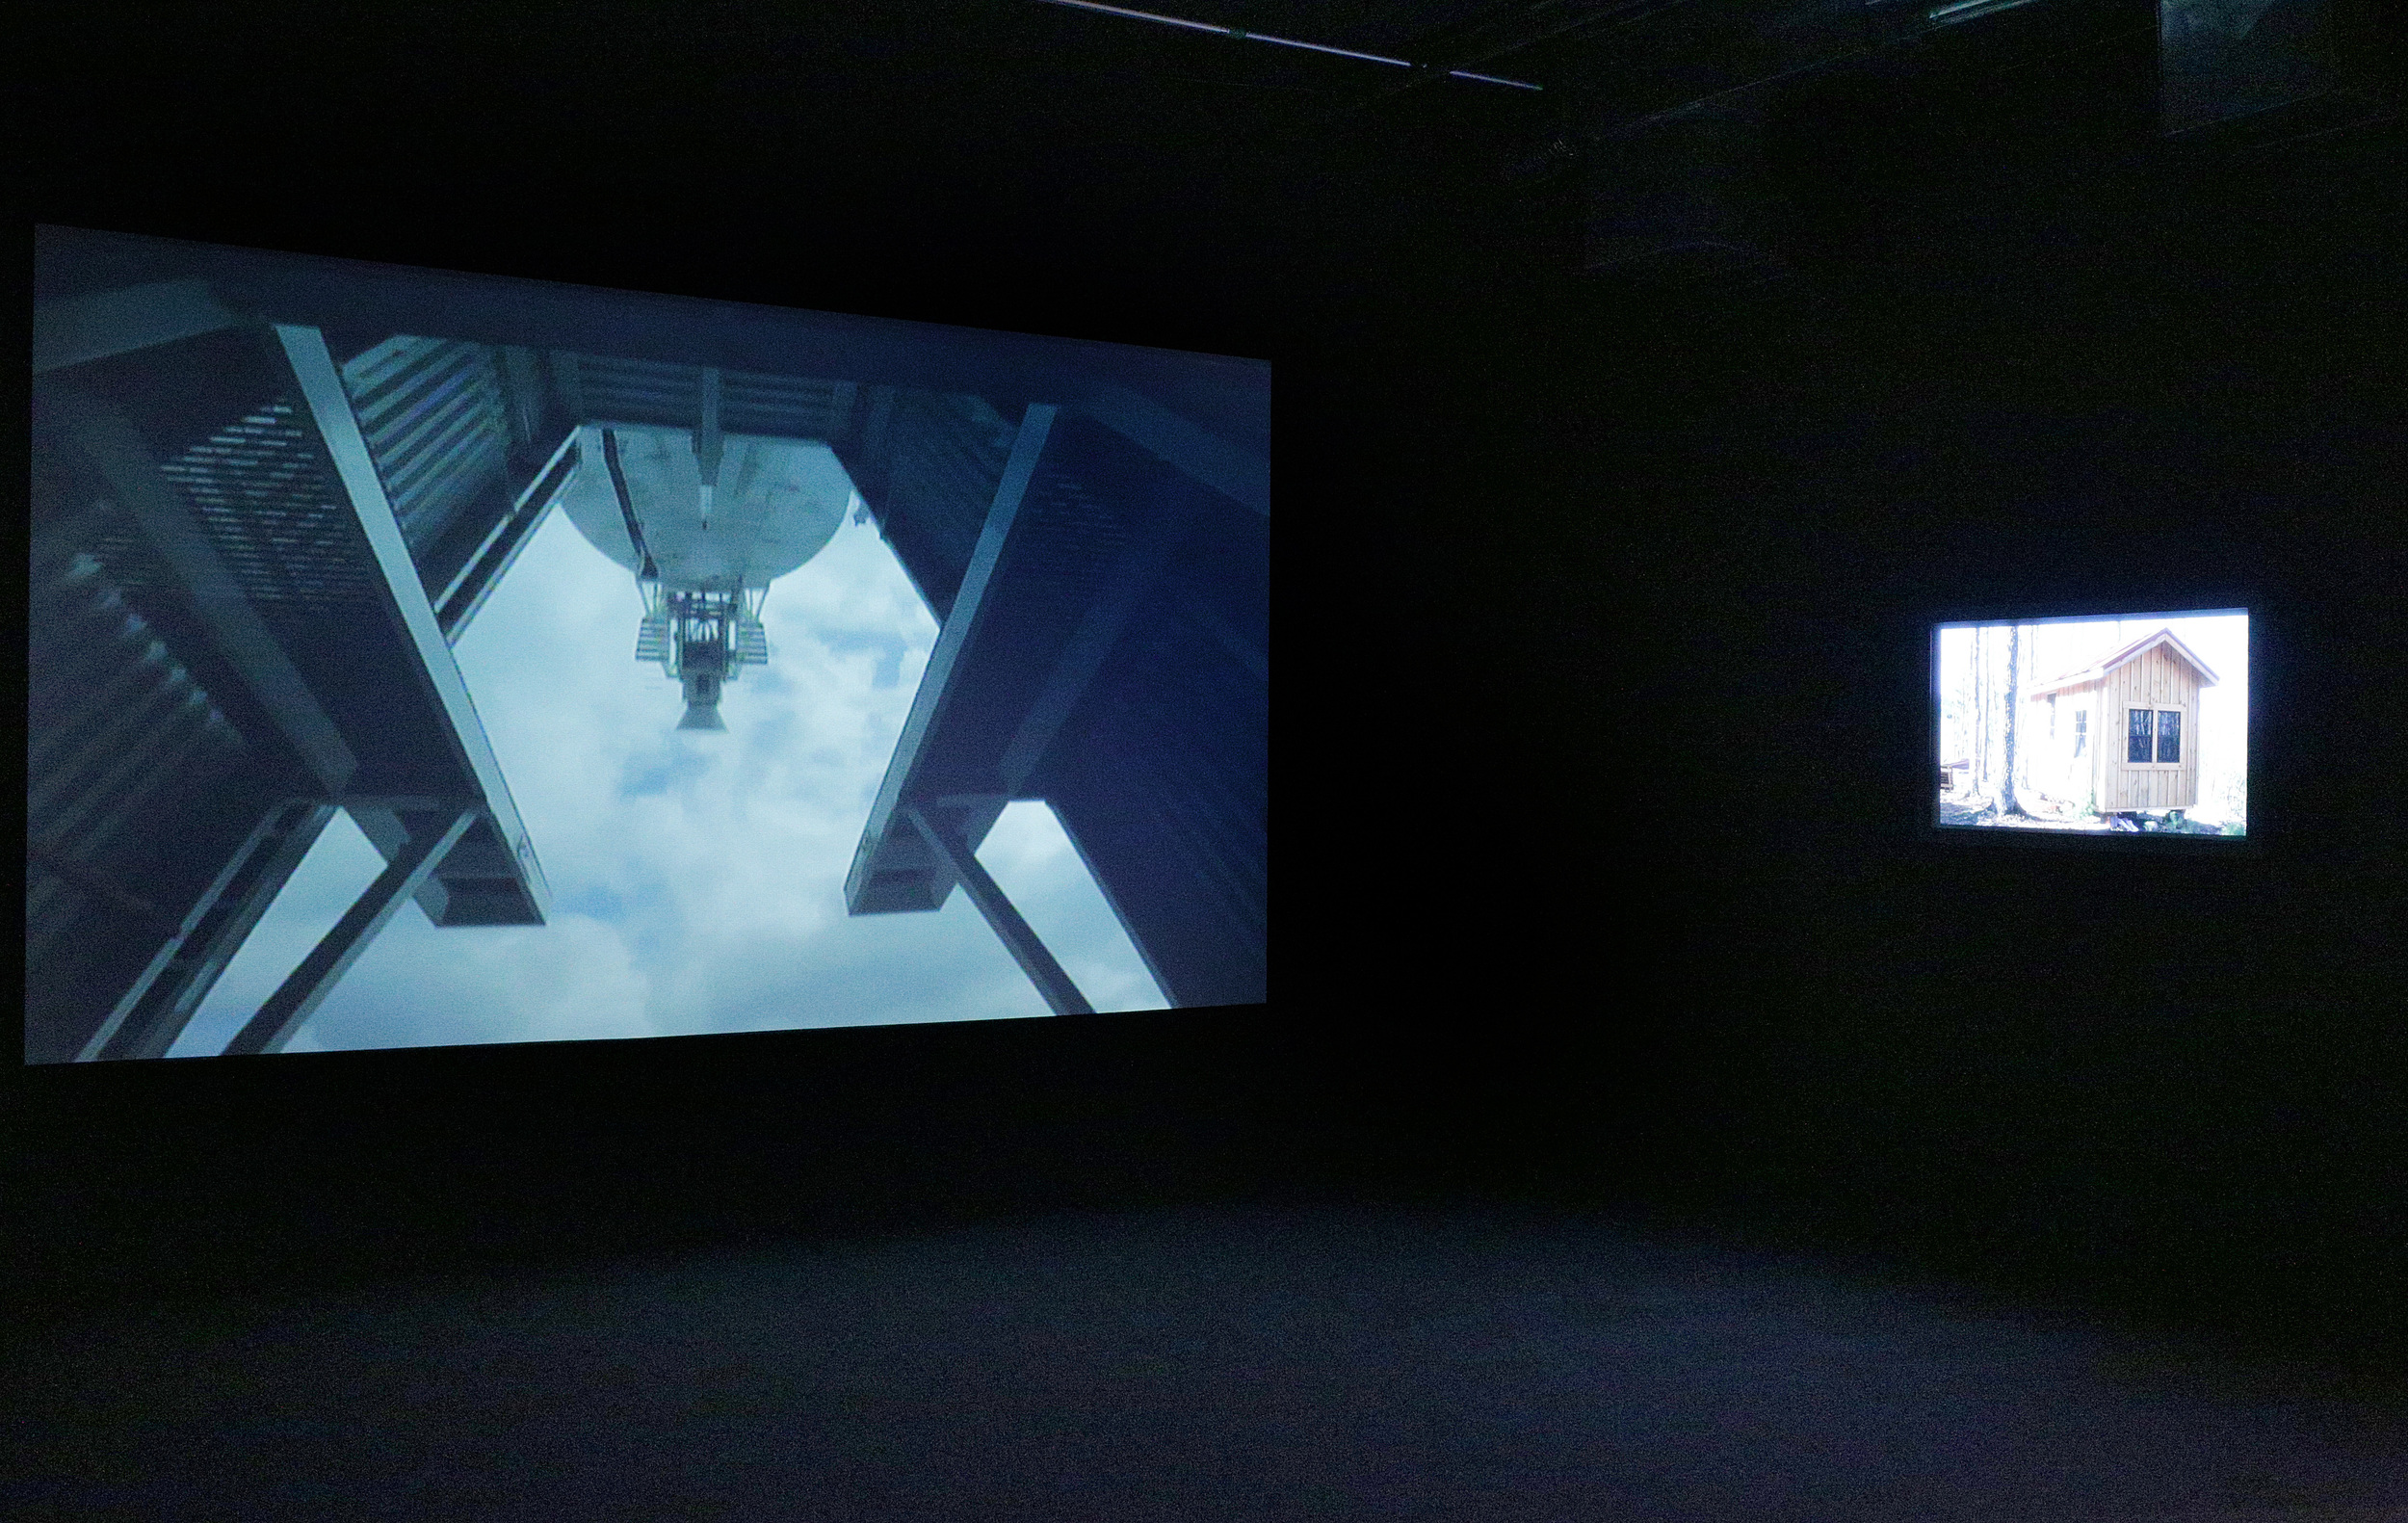 THE QUIET ZONE video installation at PIERRE FRANÇOIS OUELLETTE ART CONTEMPORAIN, MONTREAL, OCT 10-NOV 16, 2013. Part of the group show CONFLICT RESOLUTION ,curated by EDWARD MALONEY.  http://www.pfoac.com/Montreal/EM_2013_EN.html